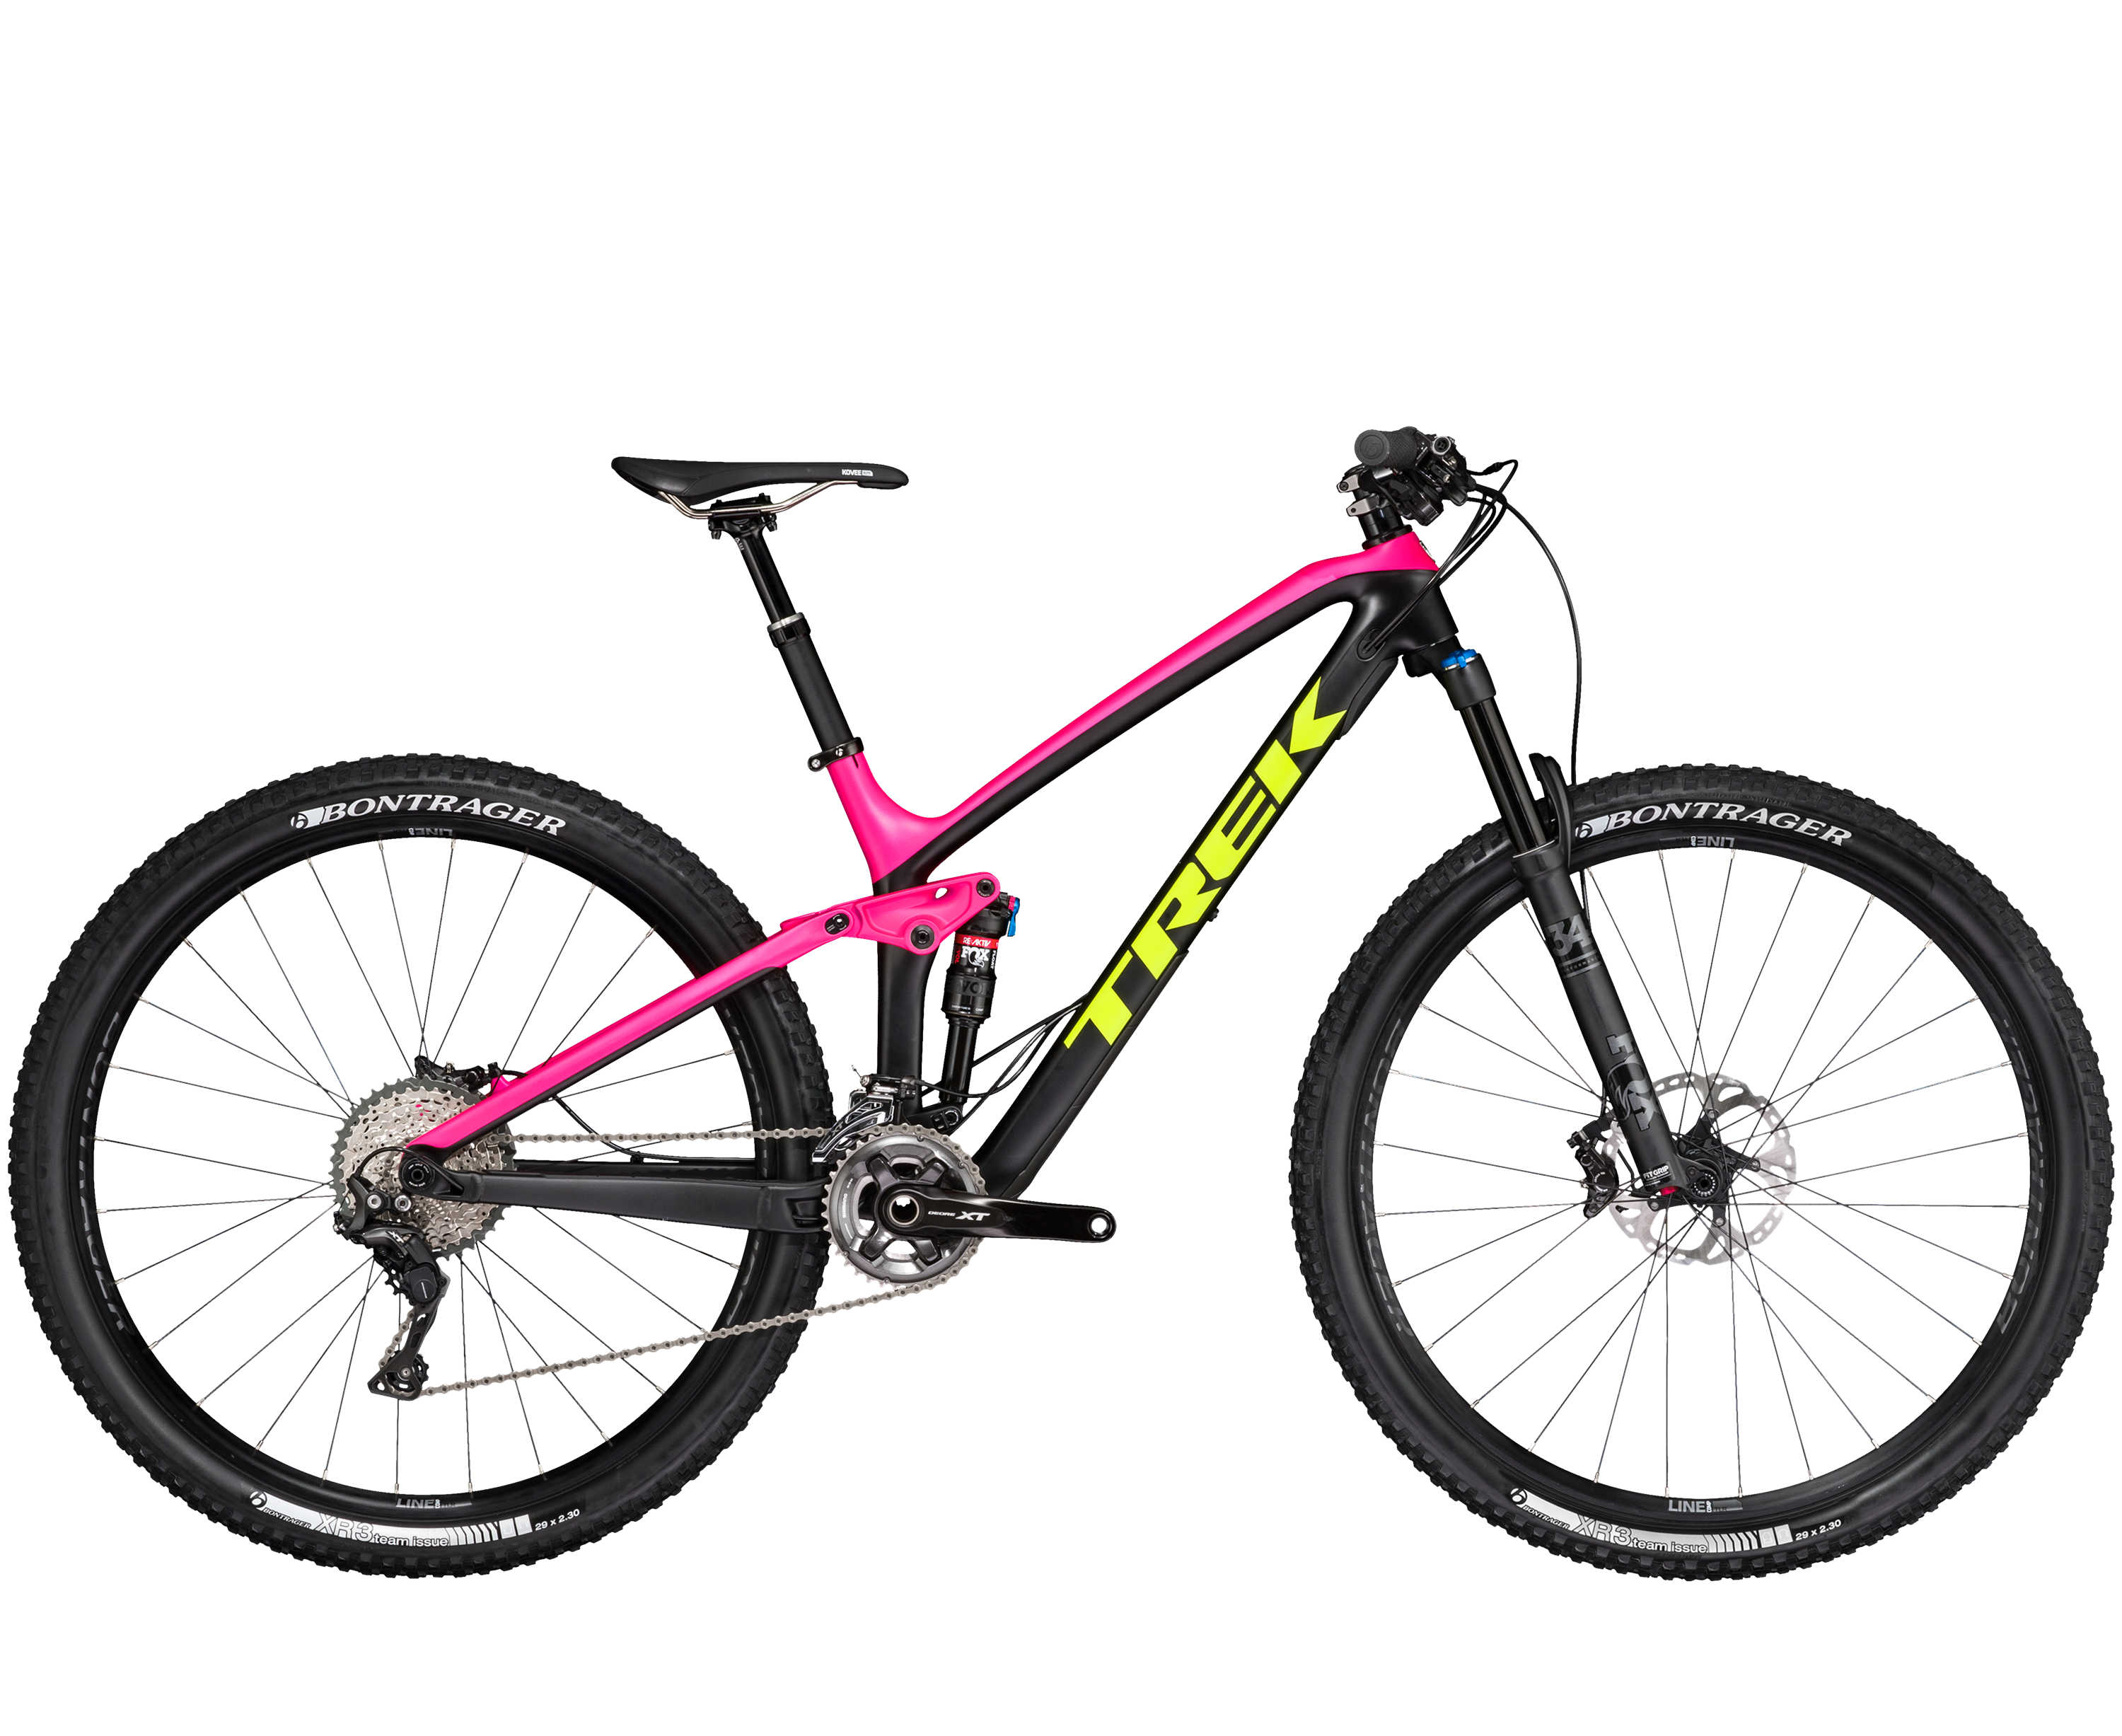 Trek Fuel EX 9.8 29 Matte Black/Pink/Yellow-P1 2017